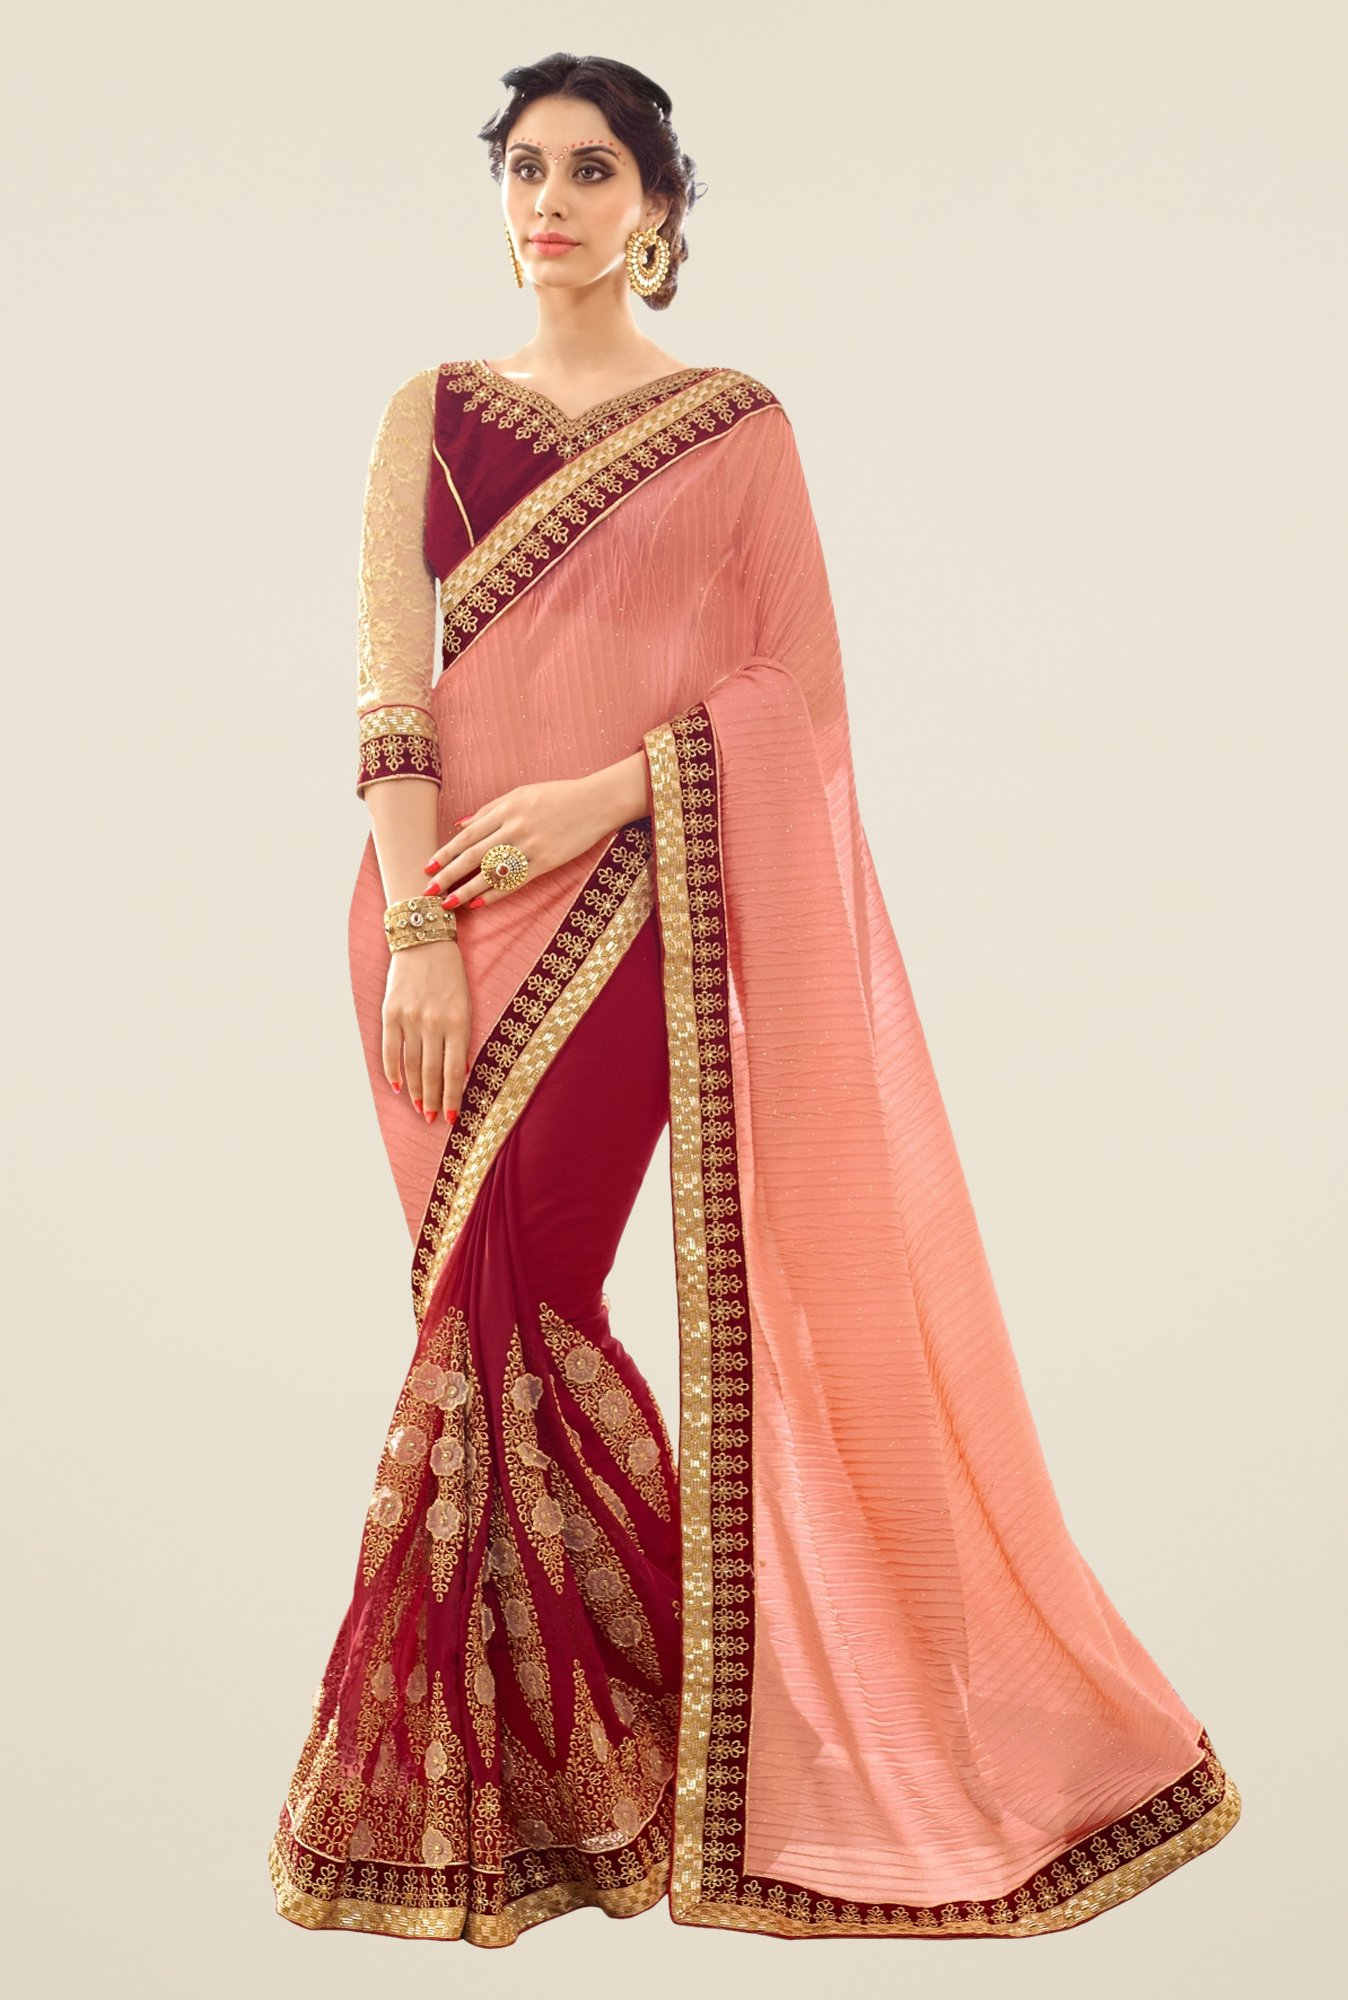 Triveni Maroon & Peach Embroidered Faux Georgette Saree